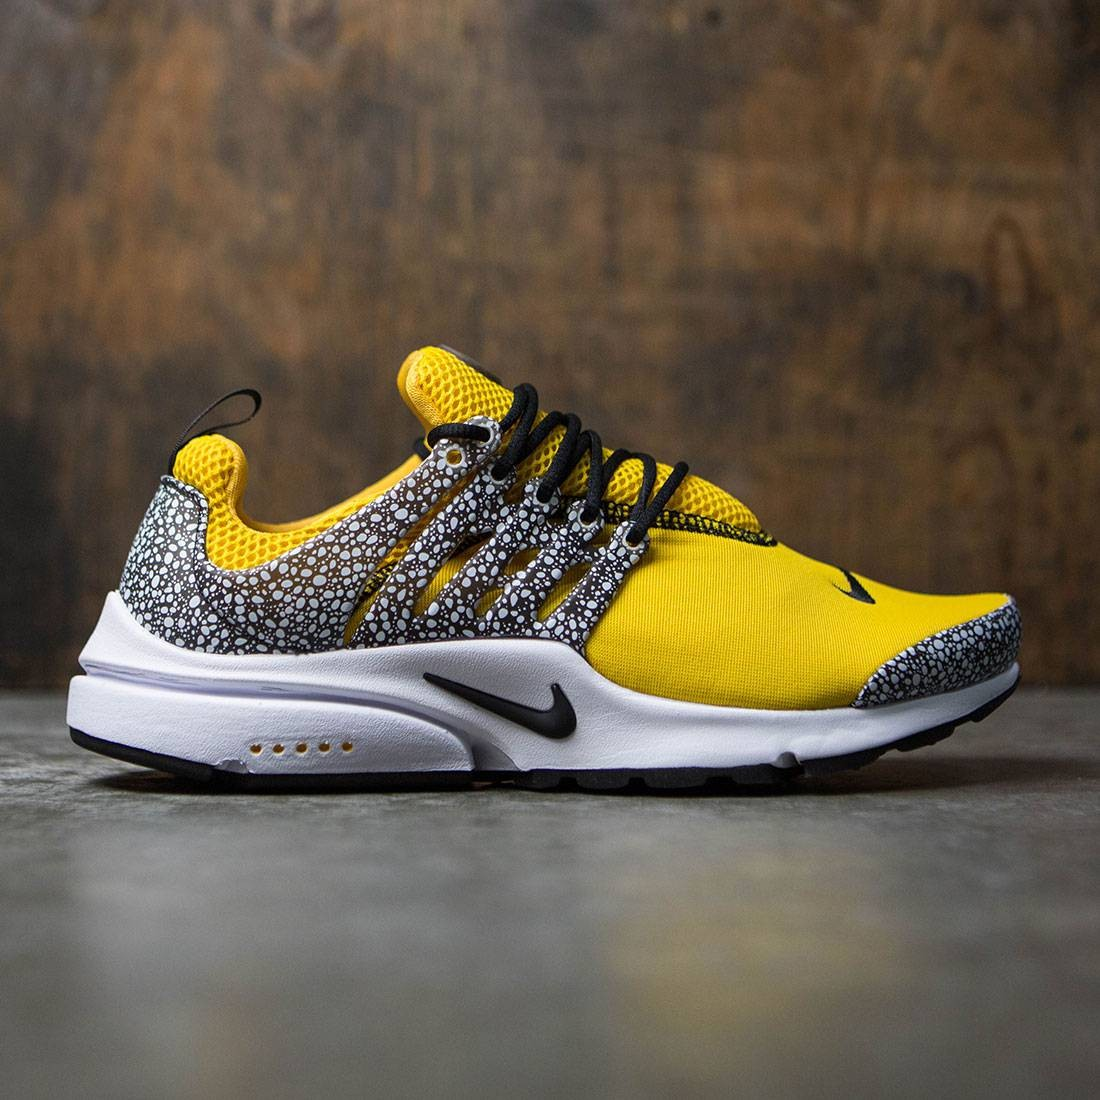 ... nike men air presto qs safari pack yellow university gold black white  ... 220f91acd